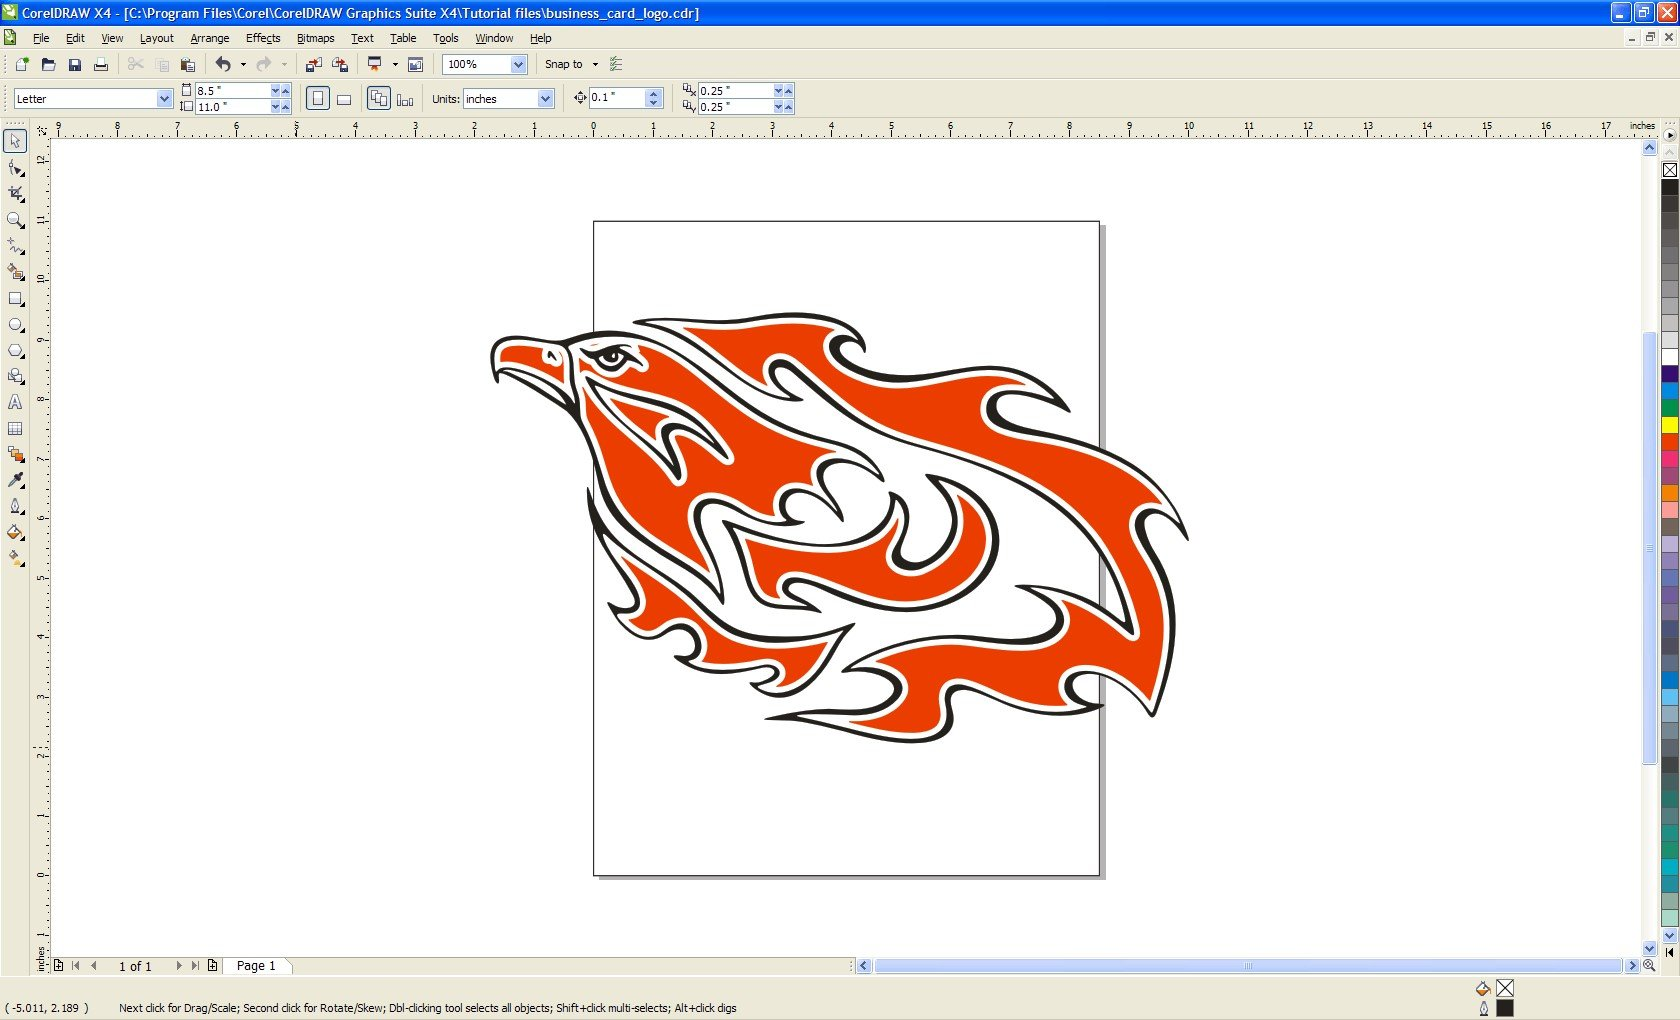 Coreldraw vector graphics - It S Possible To Update The Information On Coreldraw Graphics Suite Or Report It As Discontinued Duplicated Or Spam